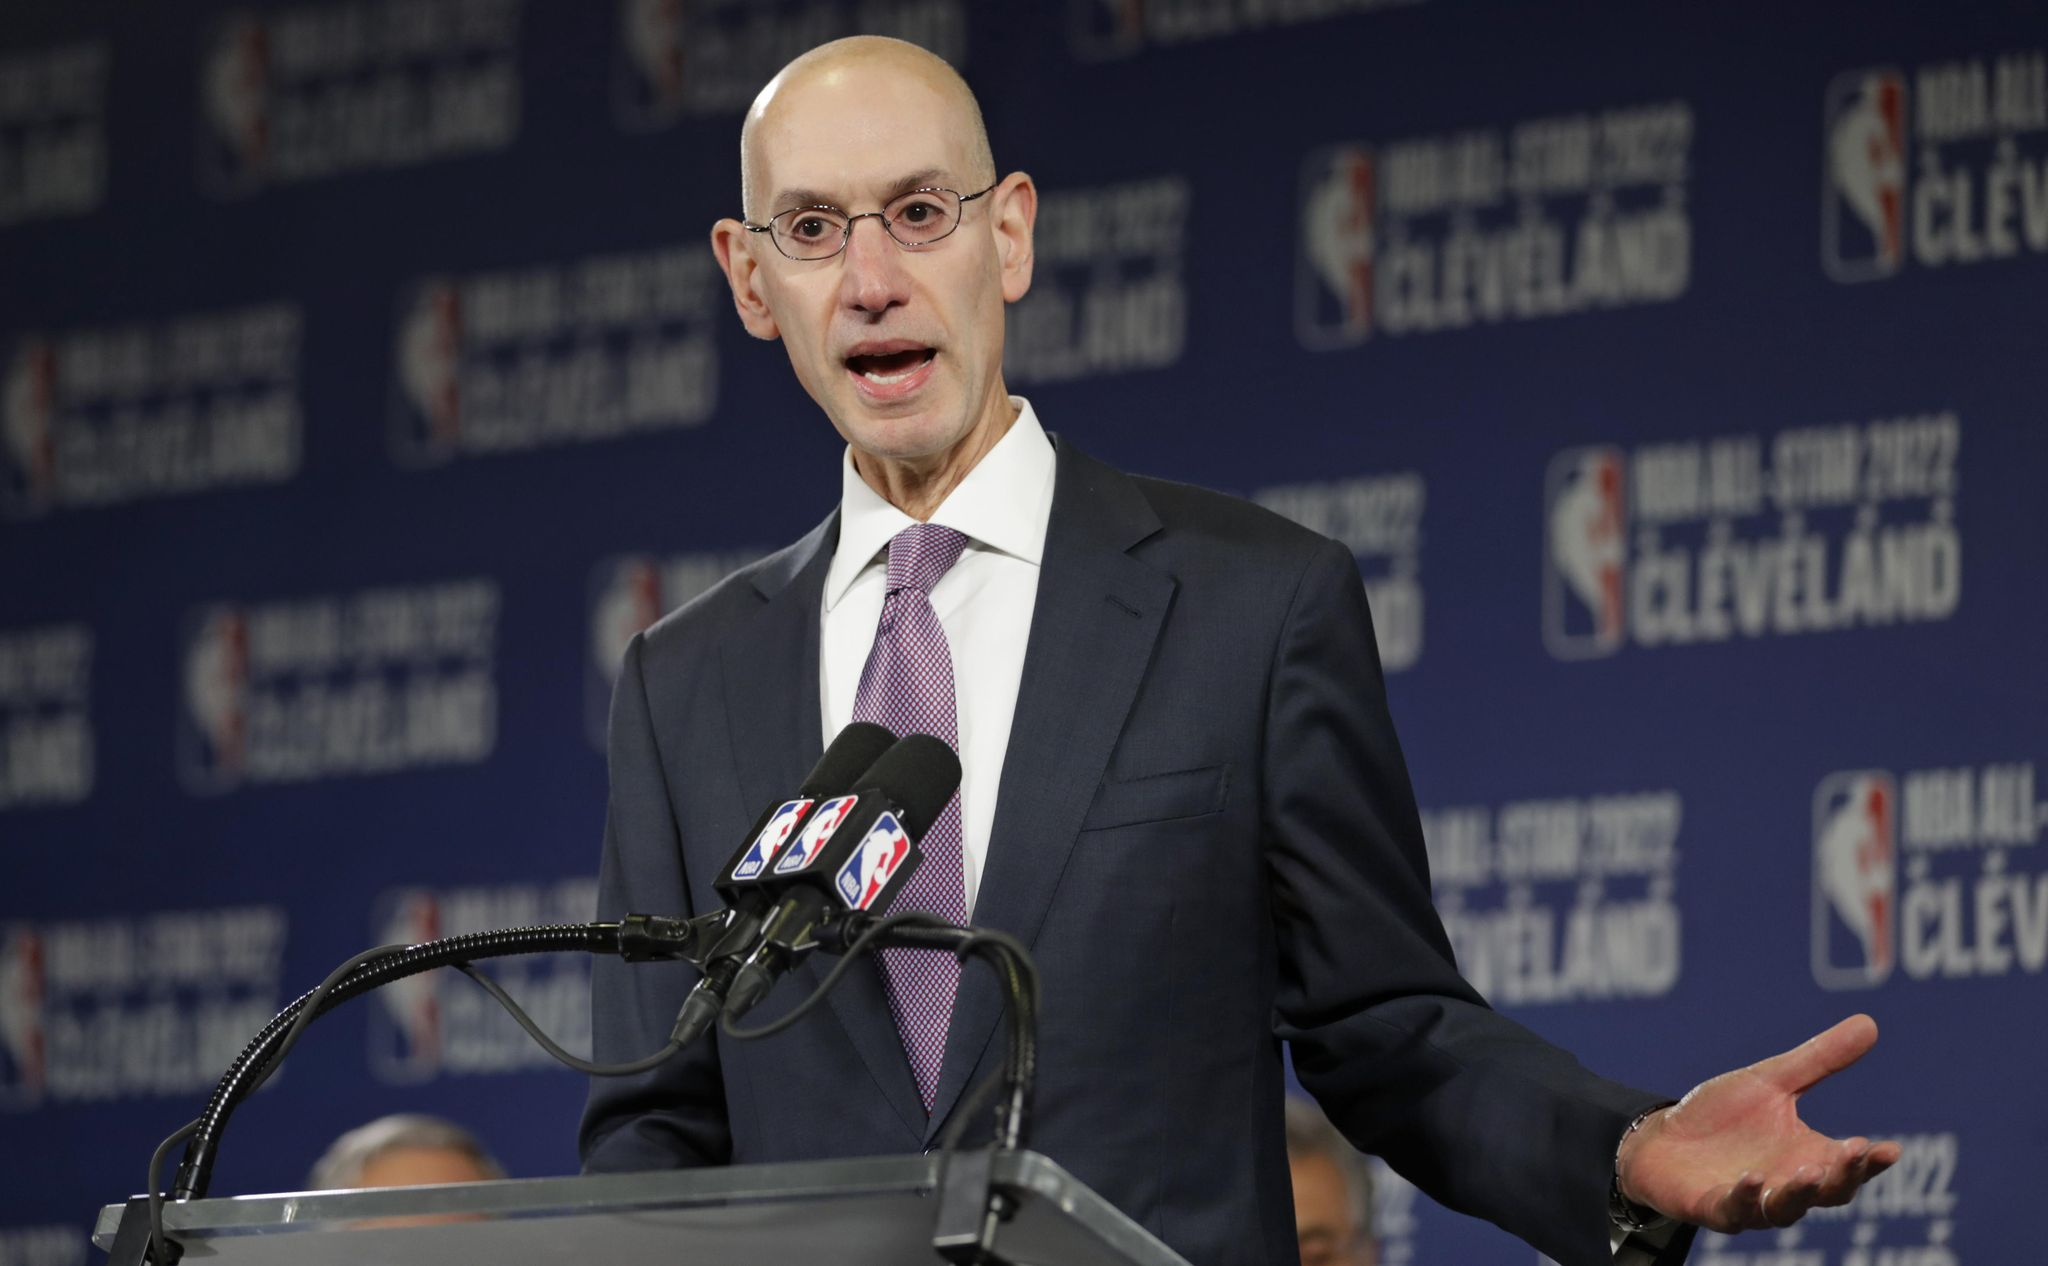 NFL owners approached NBA Commissioner Silver to switch to football: Report